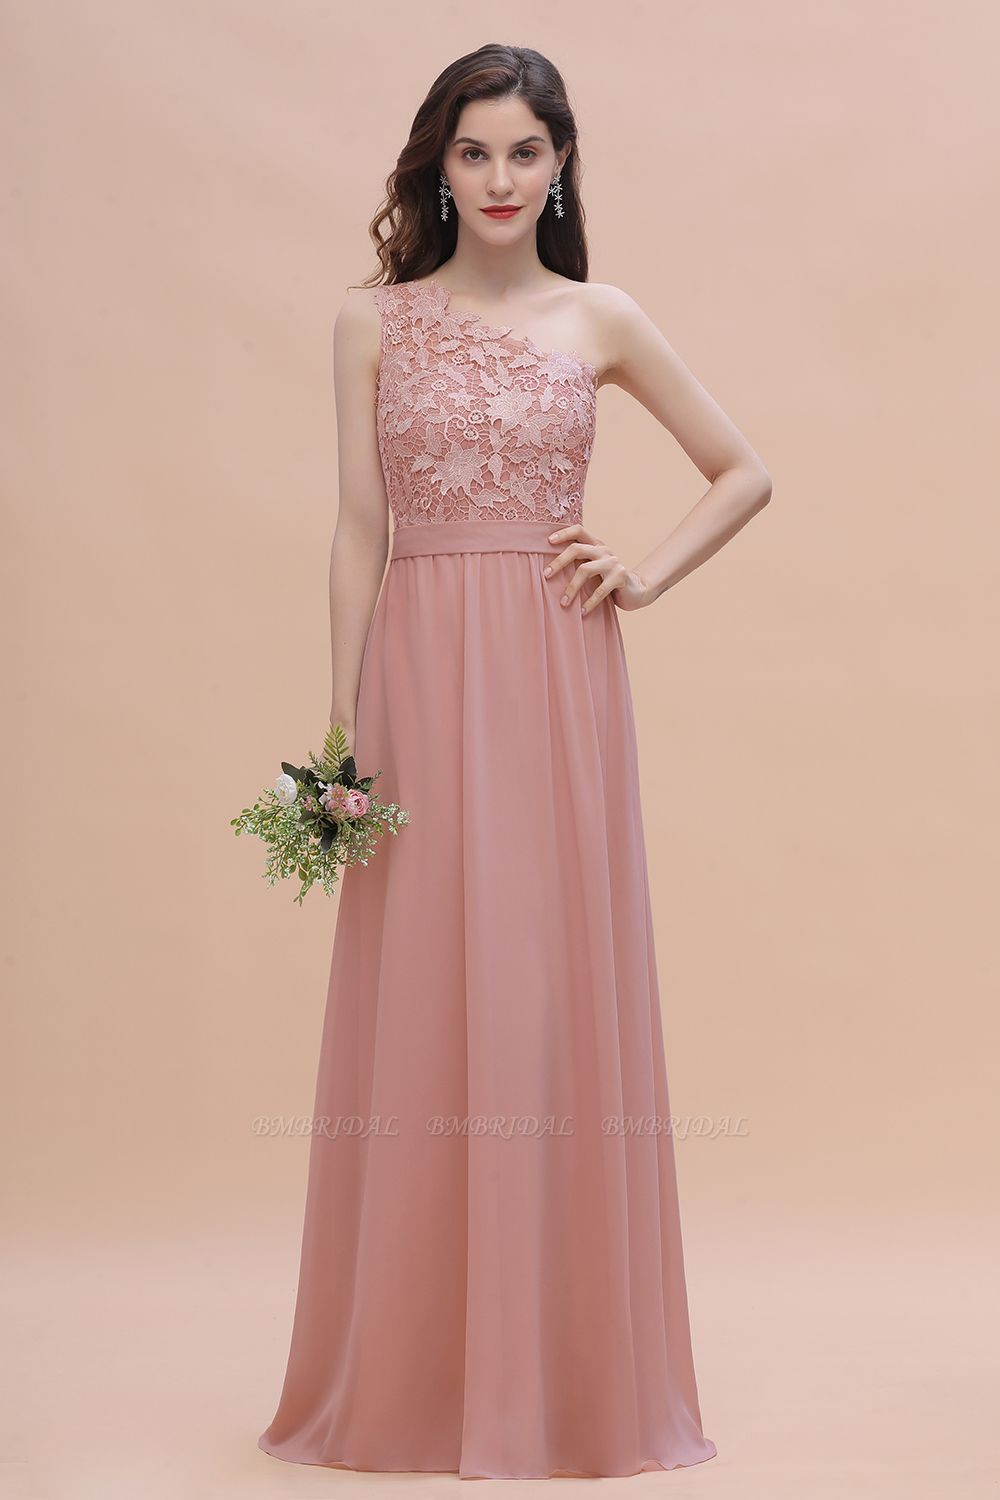 BMbridal Chic One Shoulder Chiffon Lace Vintage Mauve Bridesmaid Dress On Sale